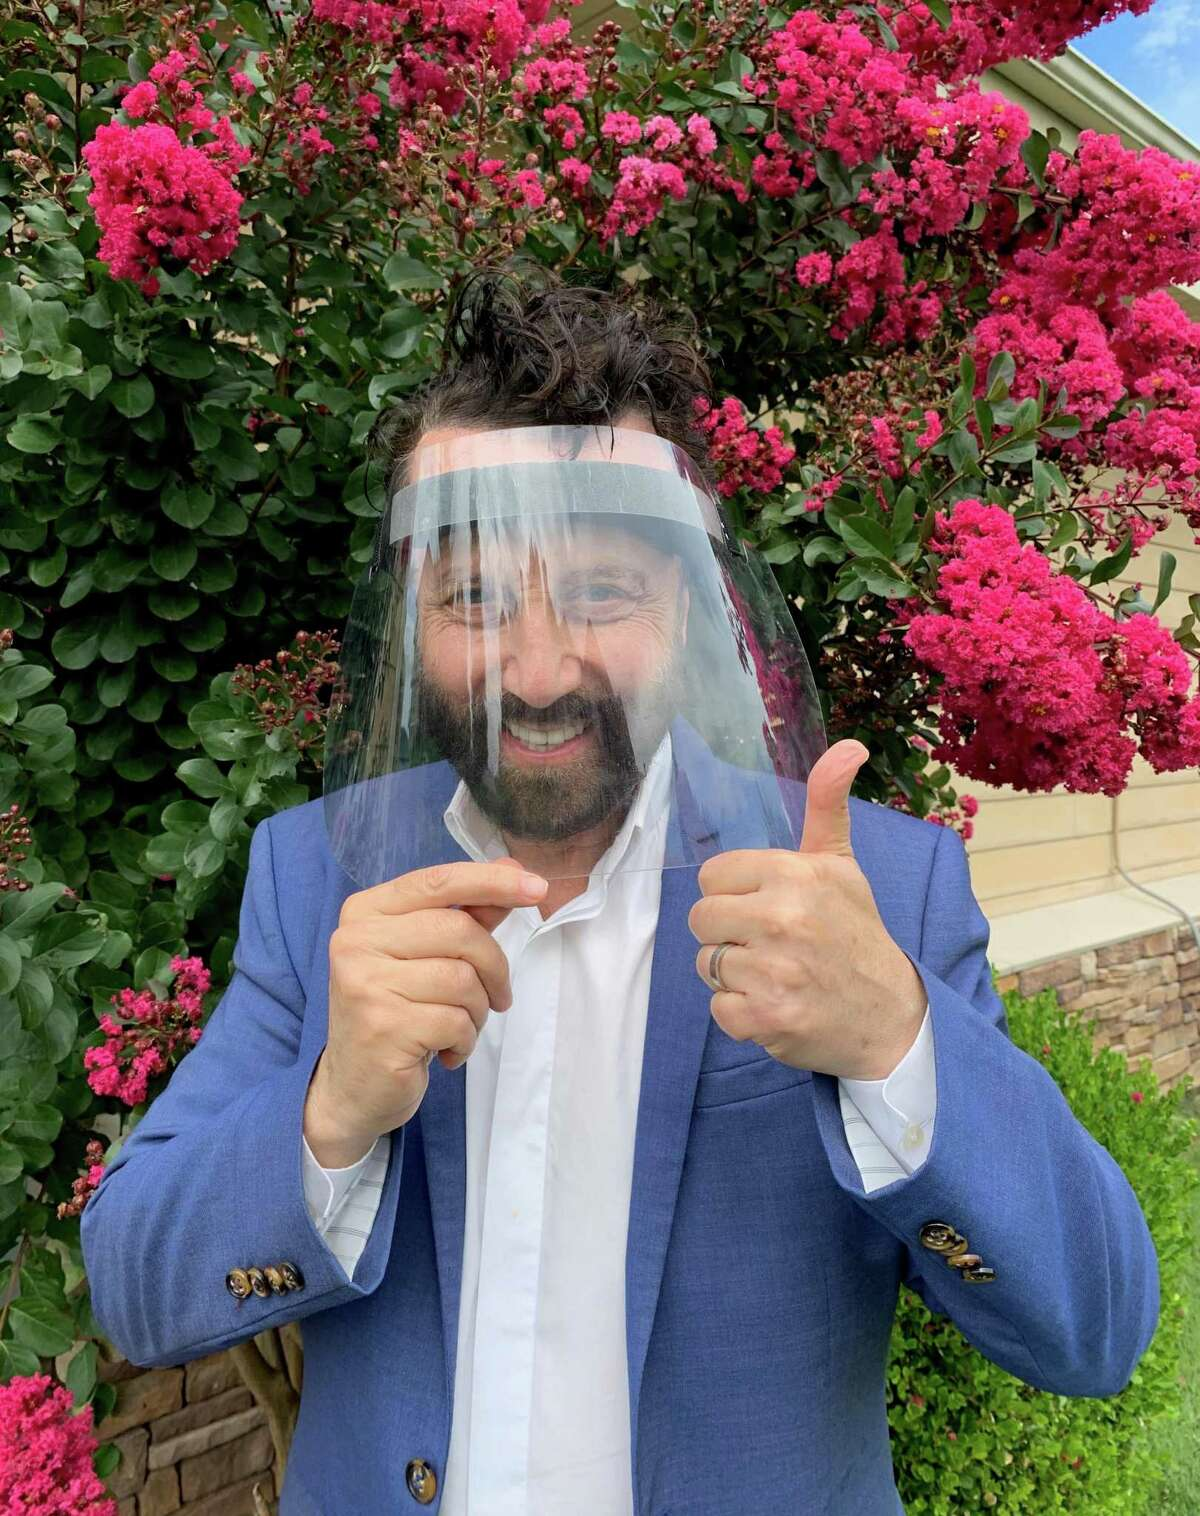 Yakov Smirnoff with his protection of choice these days.